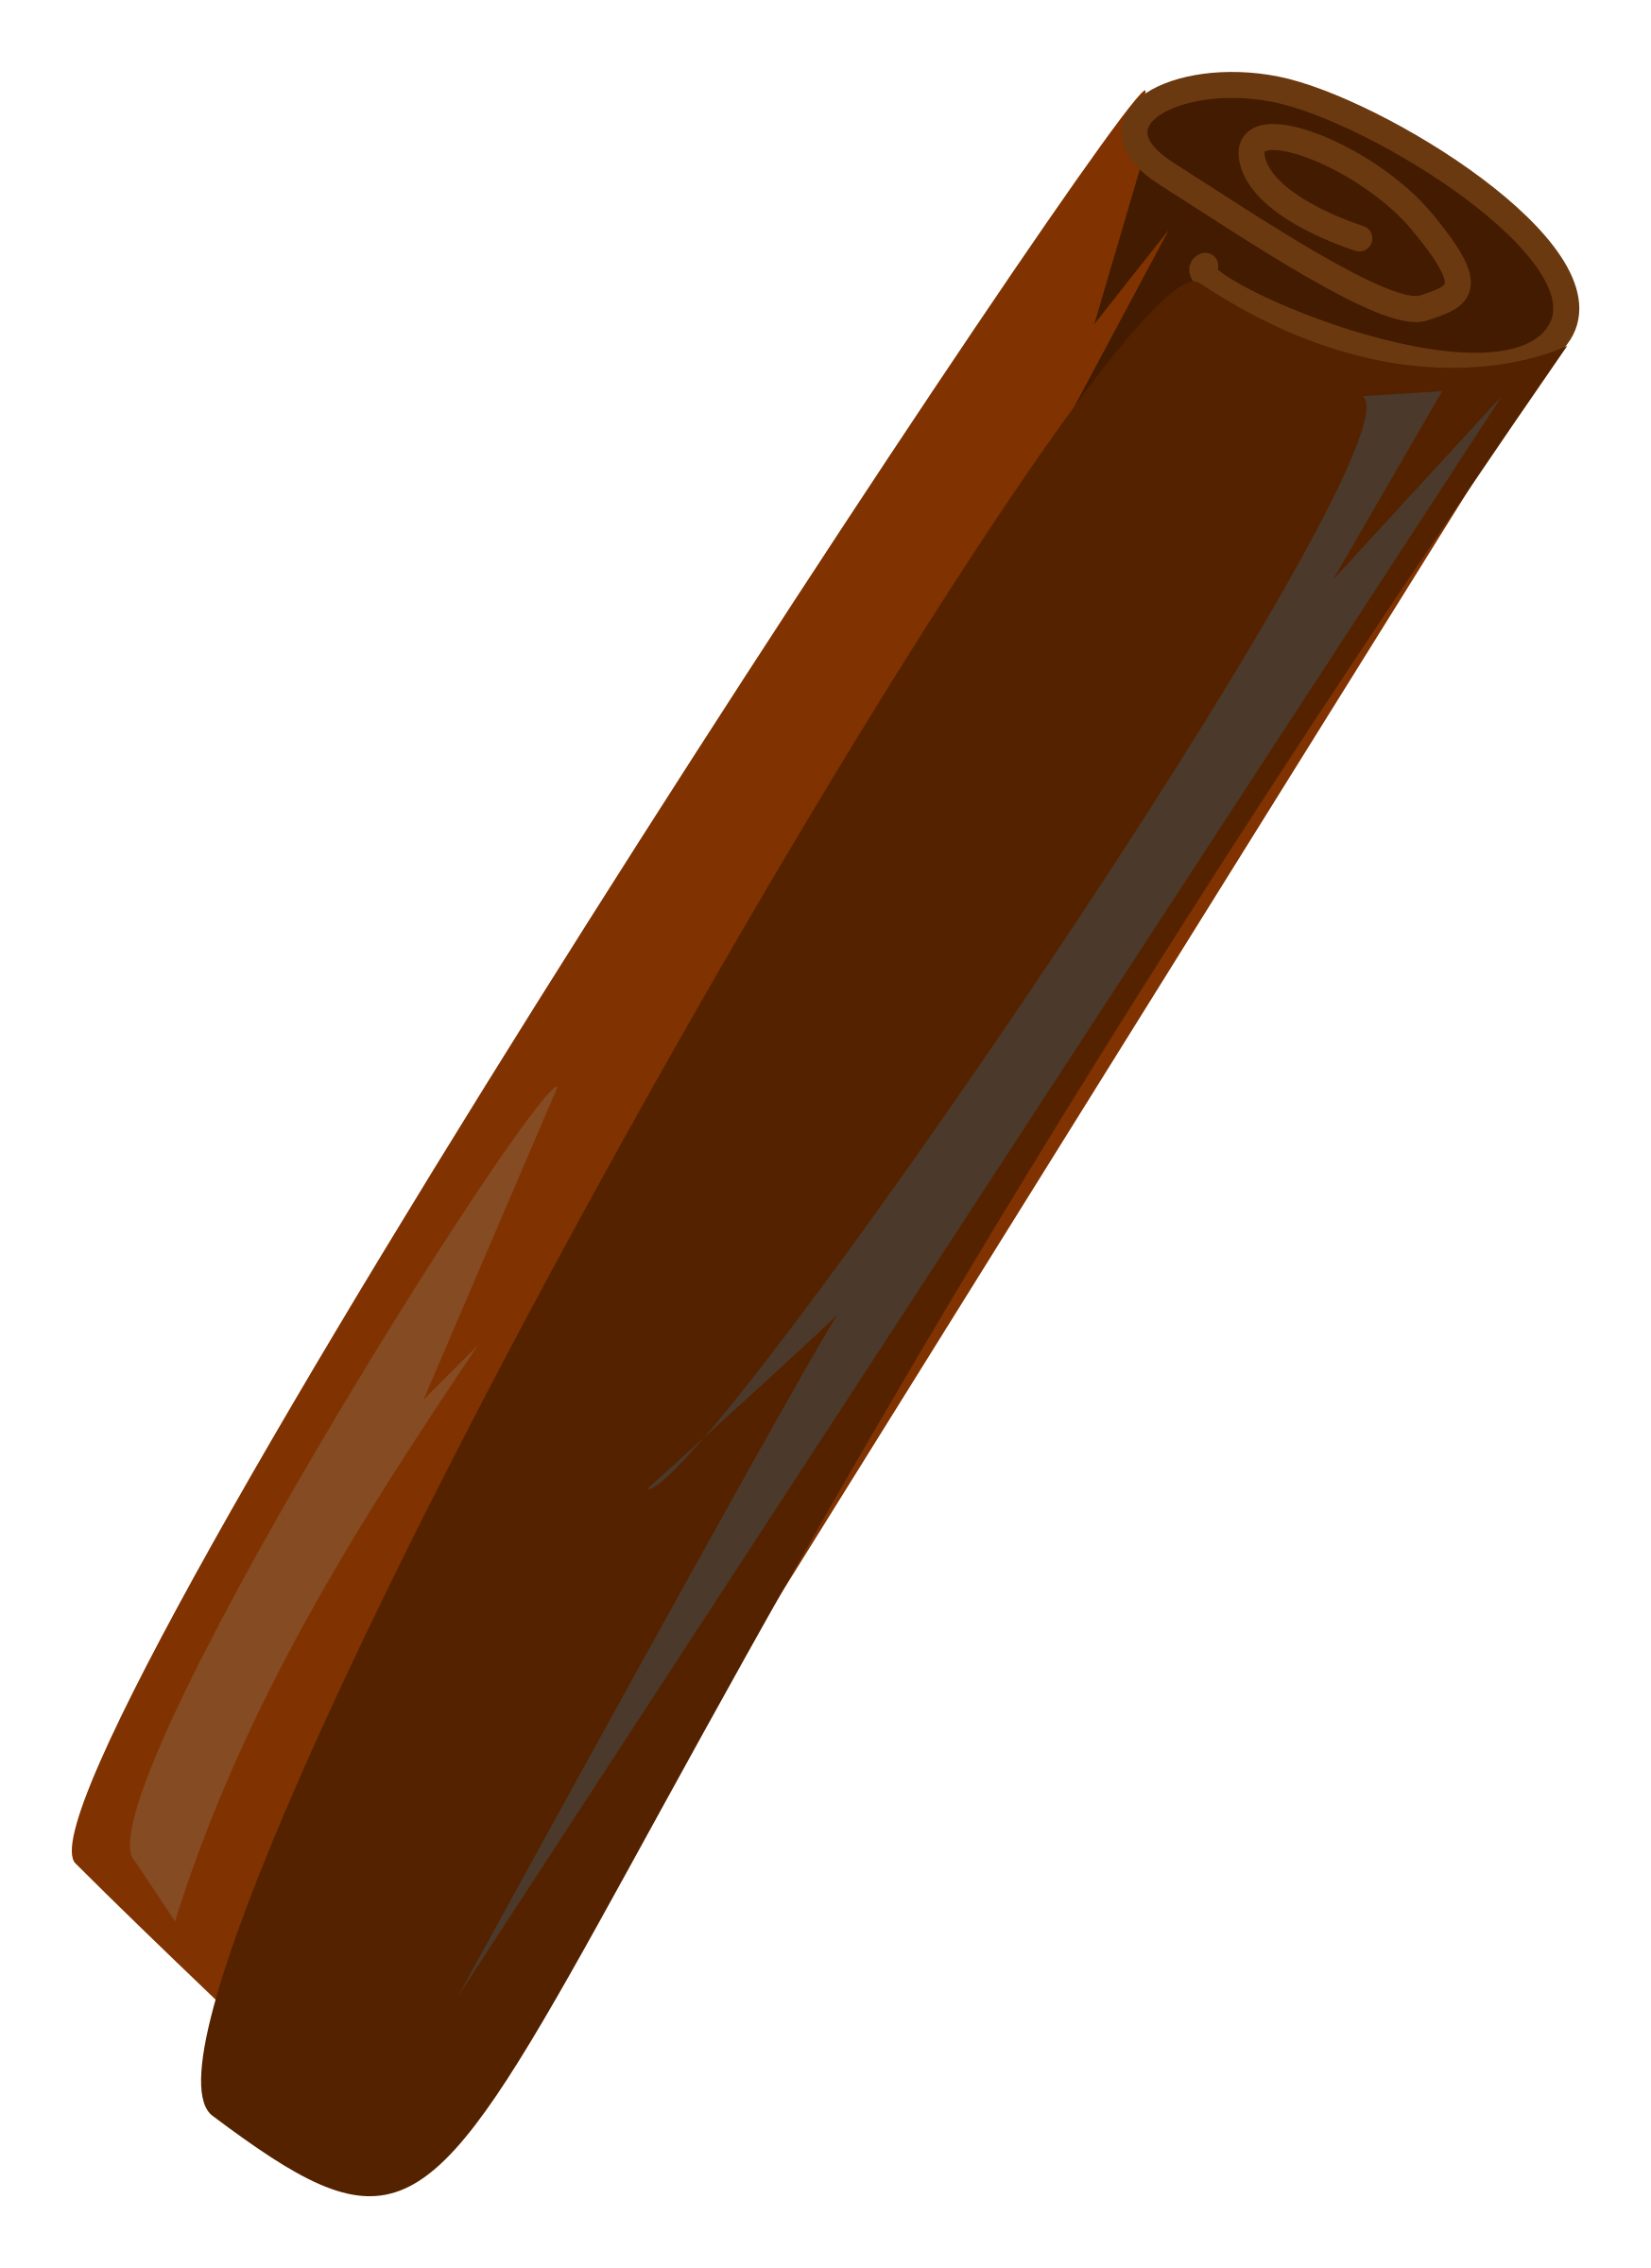 Cinnamon stick png. Icons free and downloads